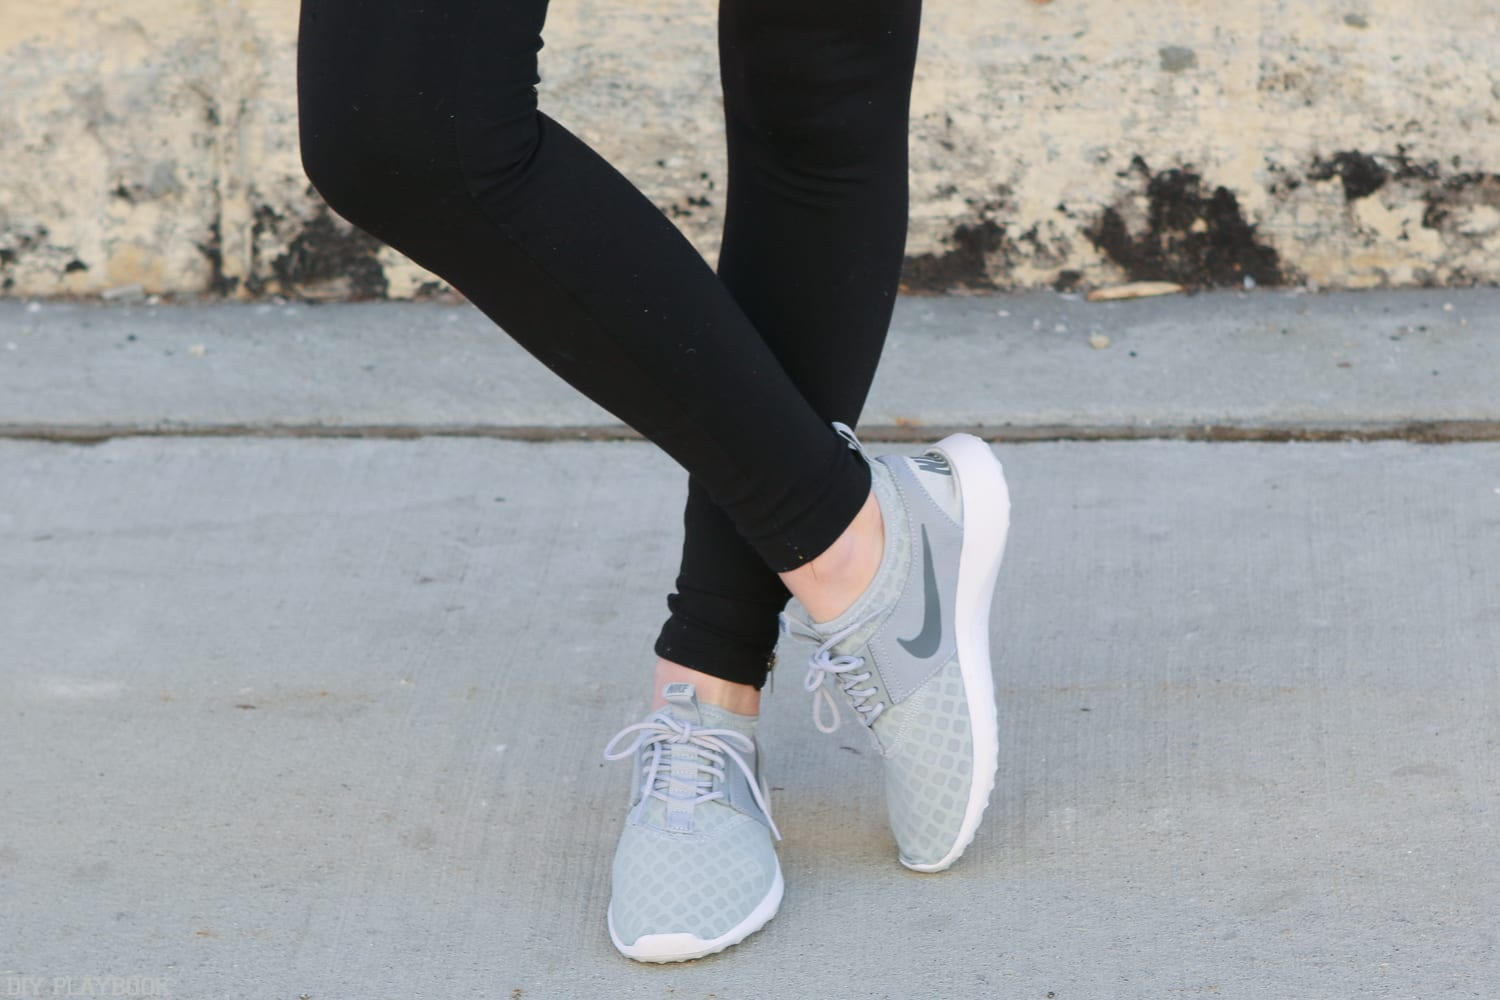 Shoes: Workout Accessories & Fitness Goals for 2017 | DIY Playbook